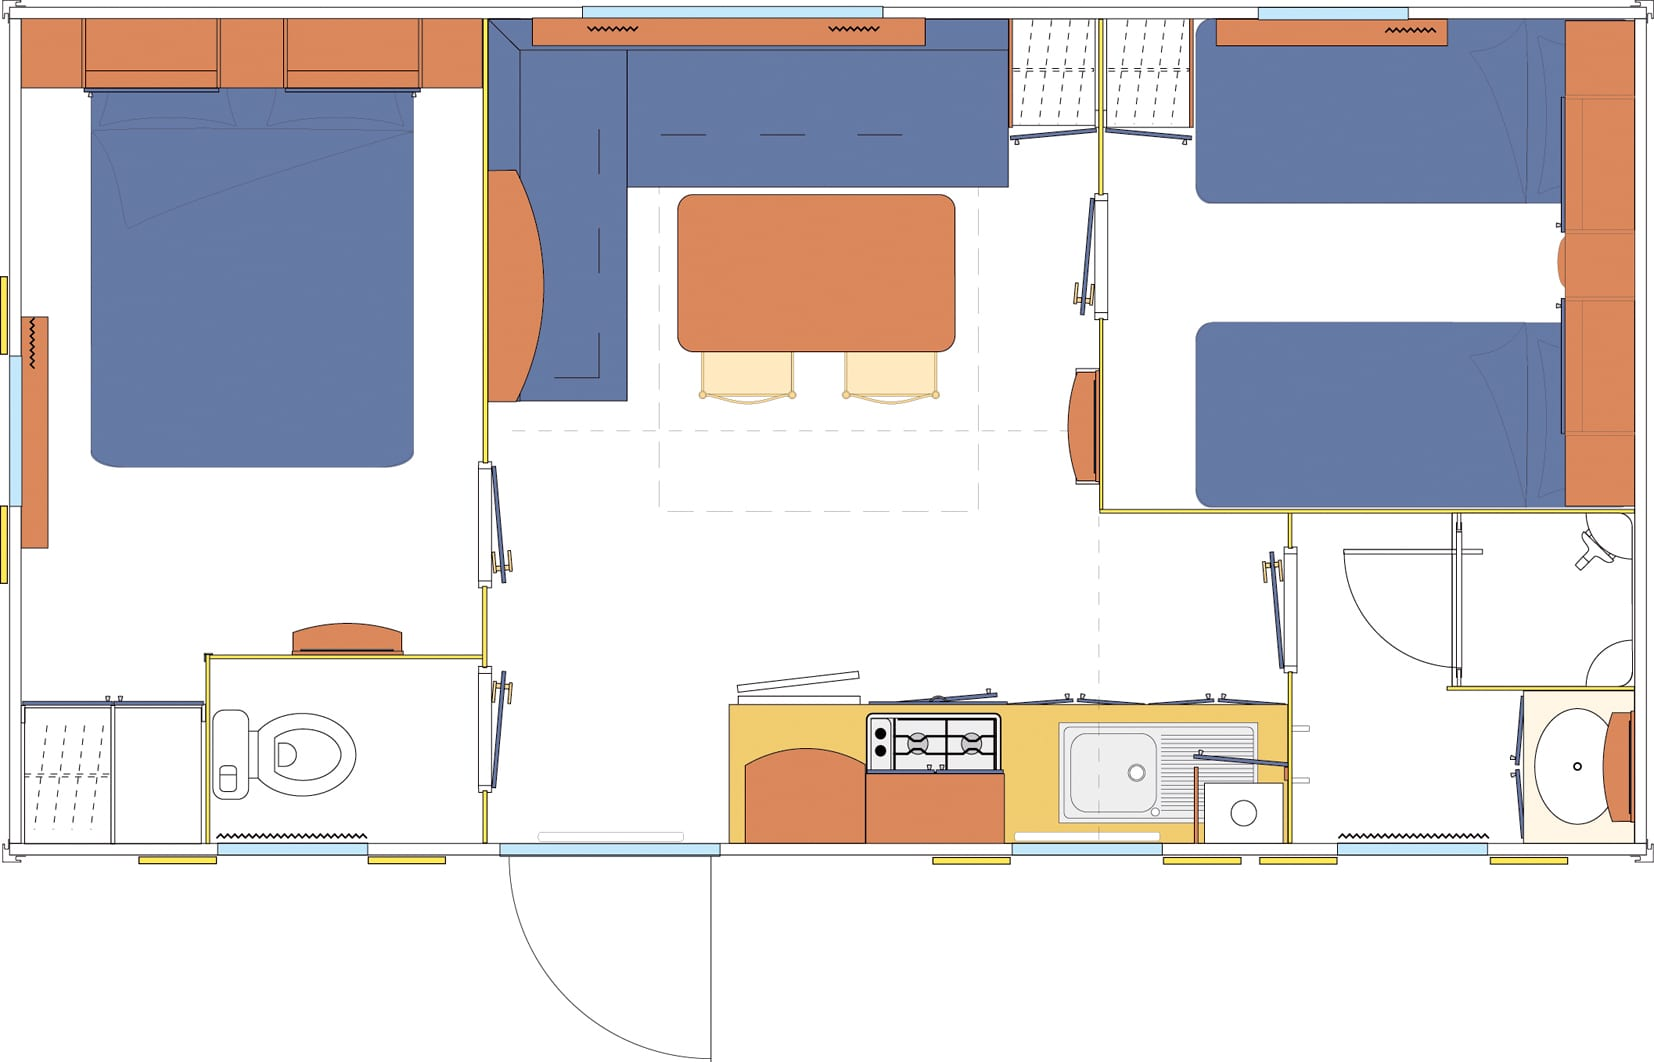 Ohara 7.34 - 2003 - Mobil home d'occasion - 5 000€ - Zen Mobil homes